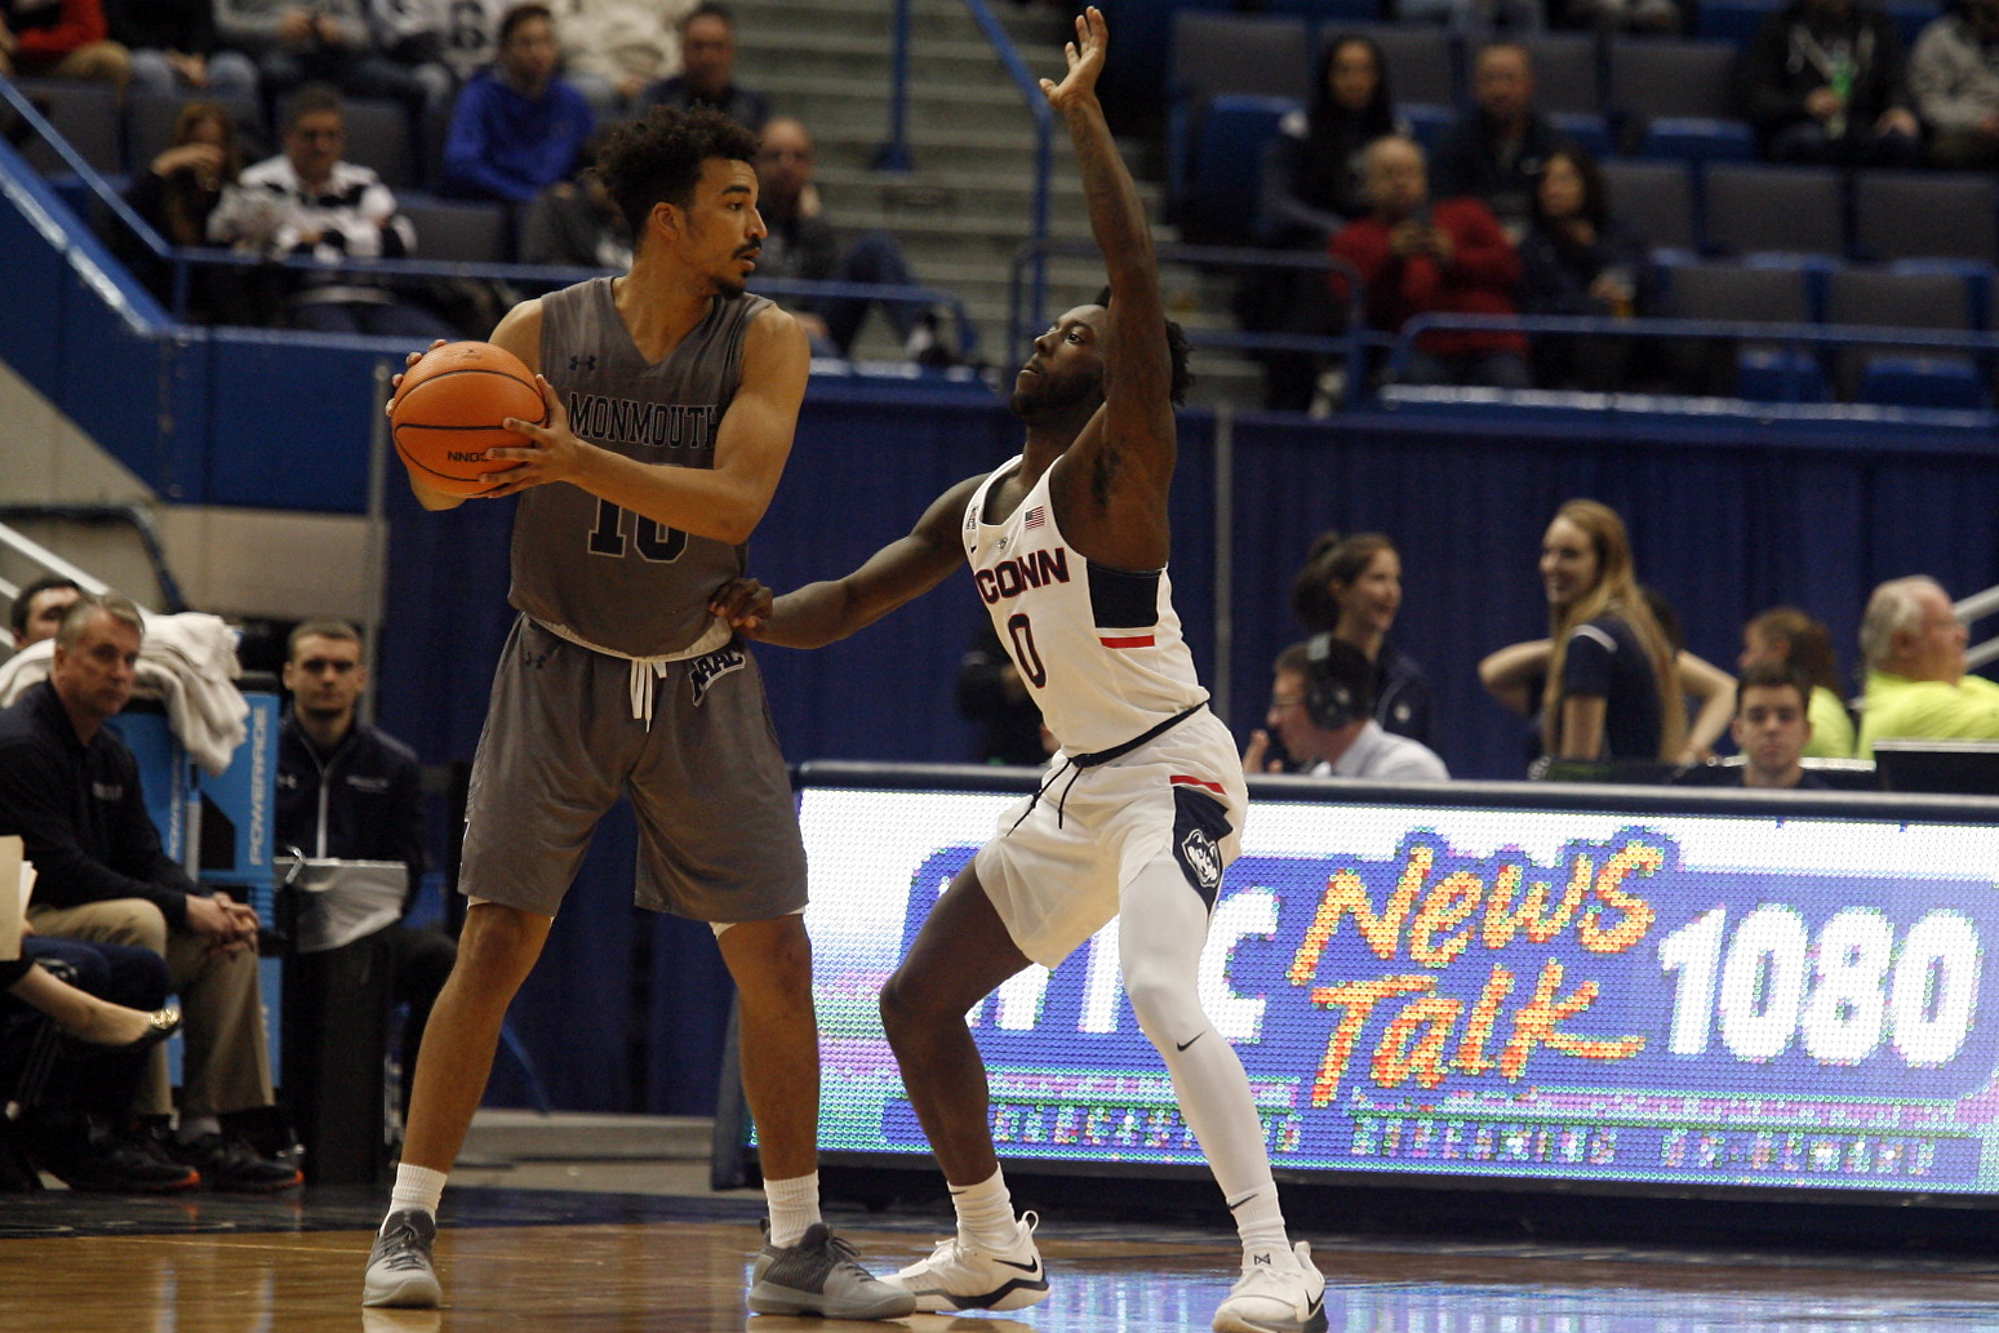 UConn's Antwoine Anderson (0) during the Monmouth Hawks vs UConn Huskies men's college basketball game at the XL Center in Hartford, CT on December 2, 2017.